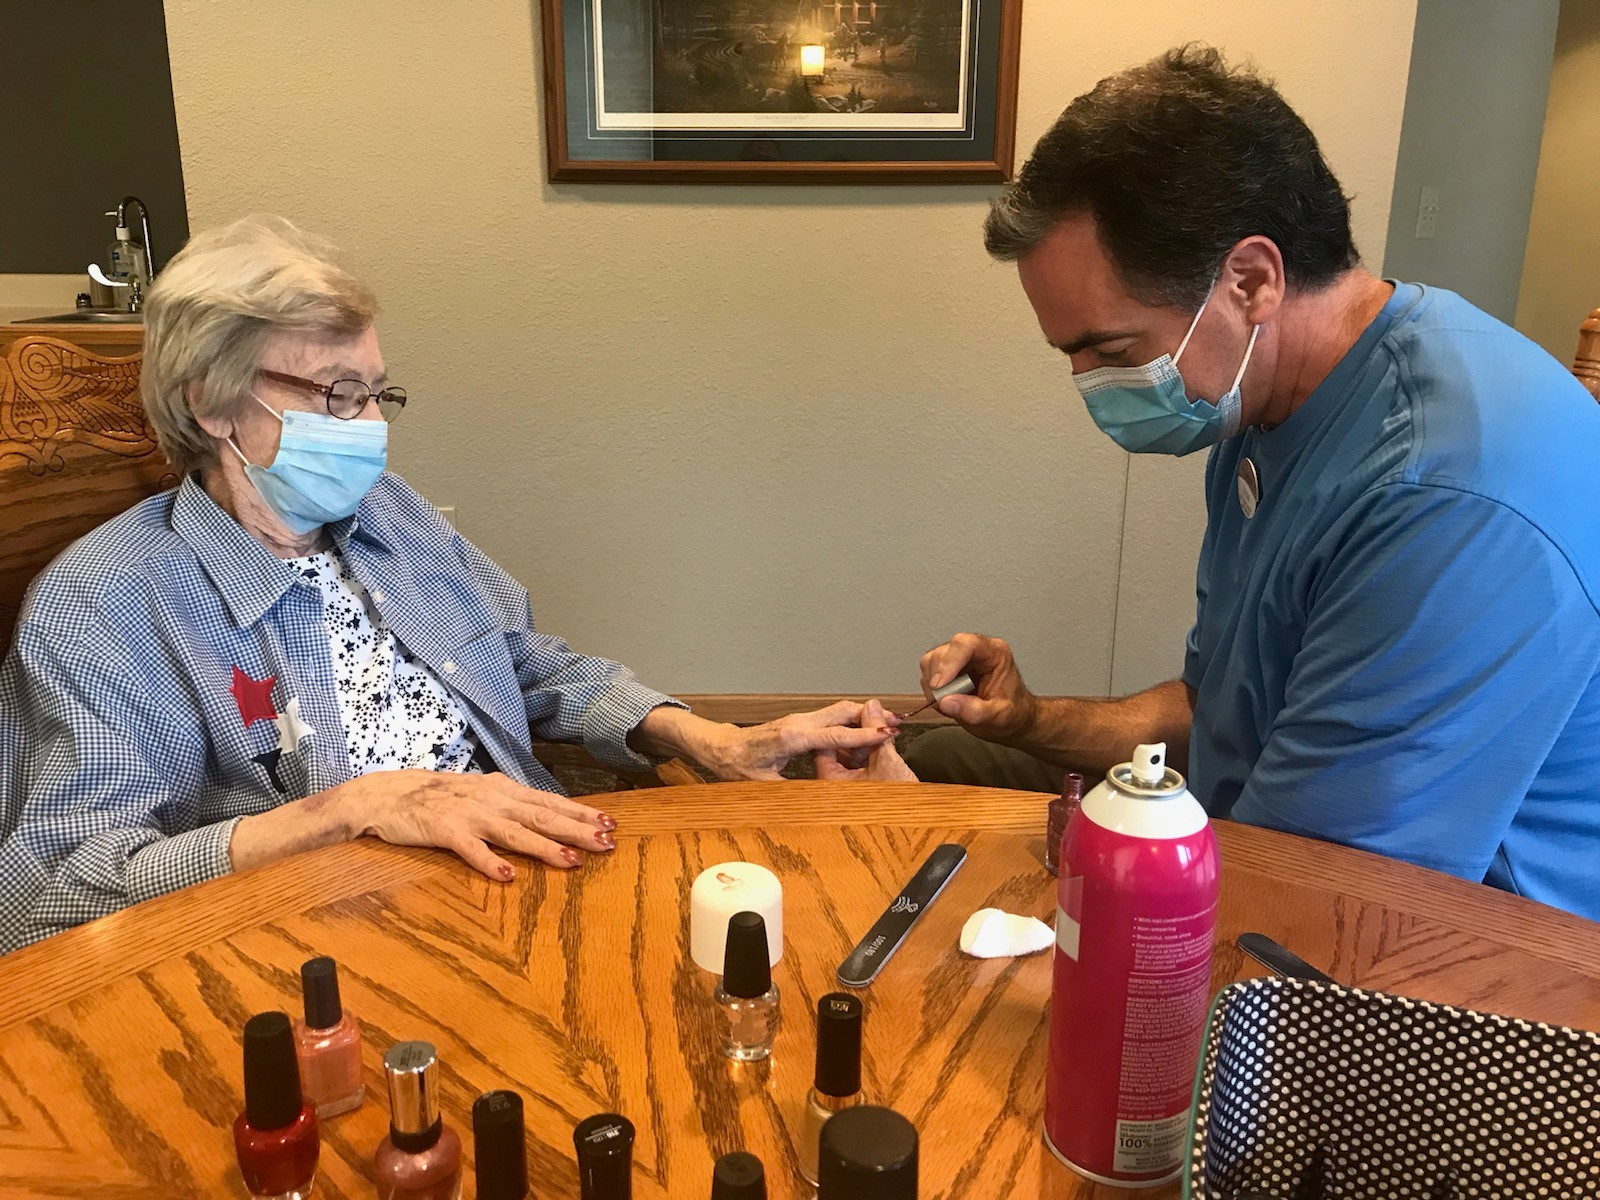 Weekly manicures are back as Steve, our LEC, pampers Judy! (She just happens to be his mother.)